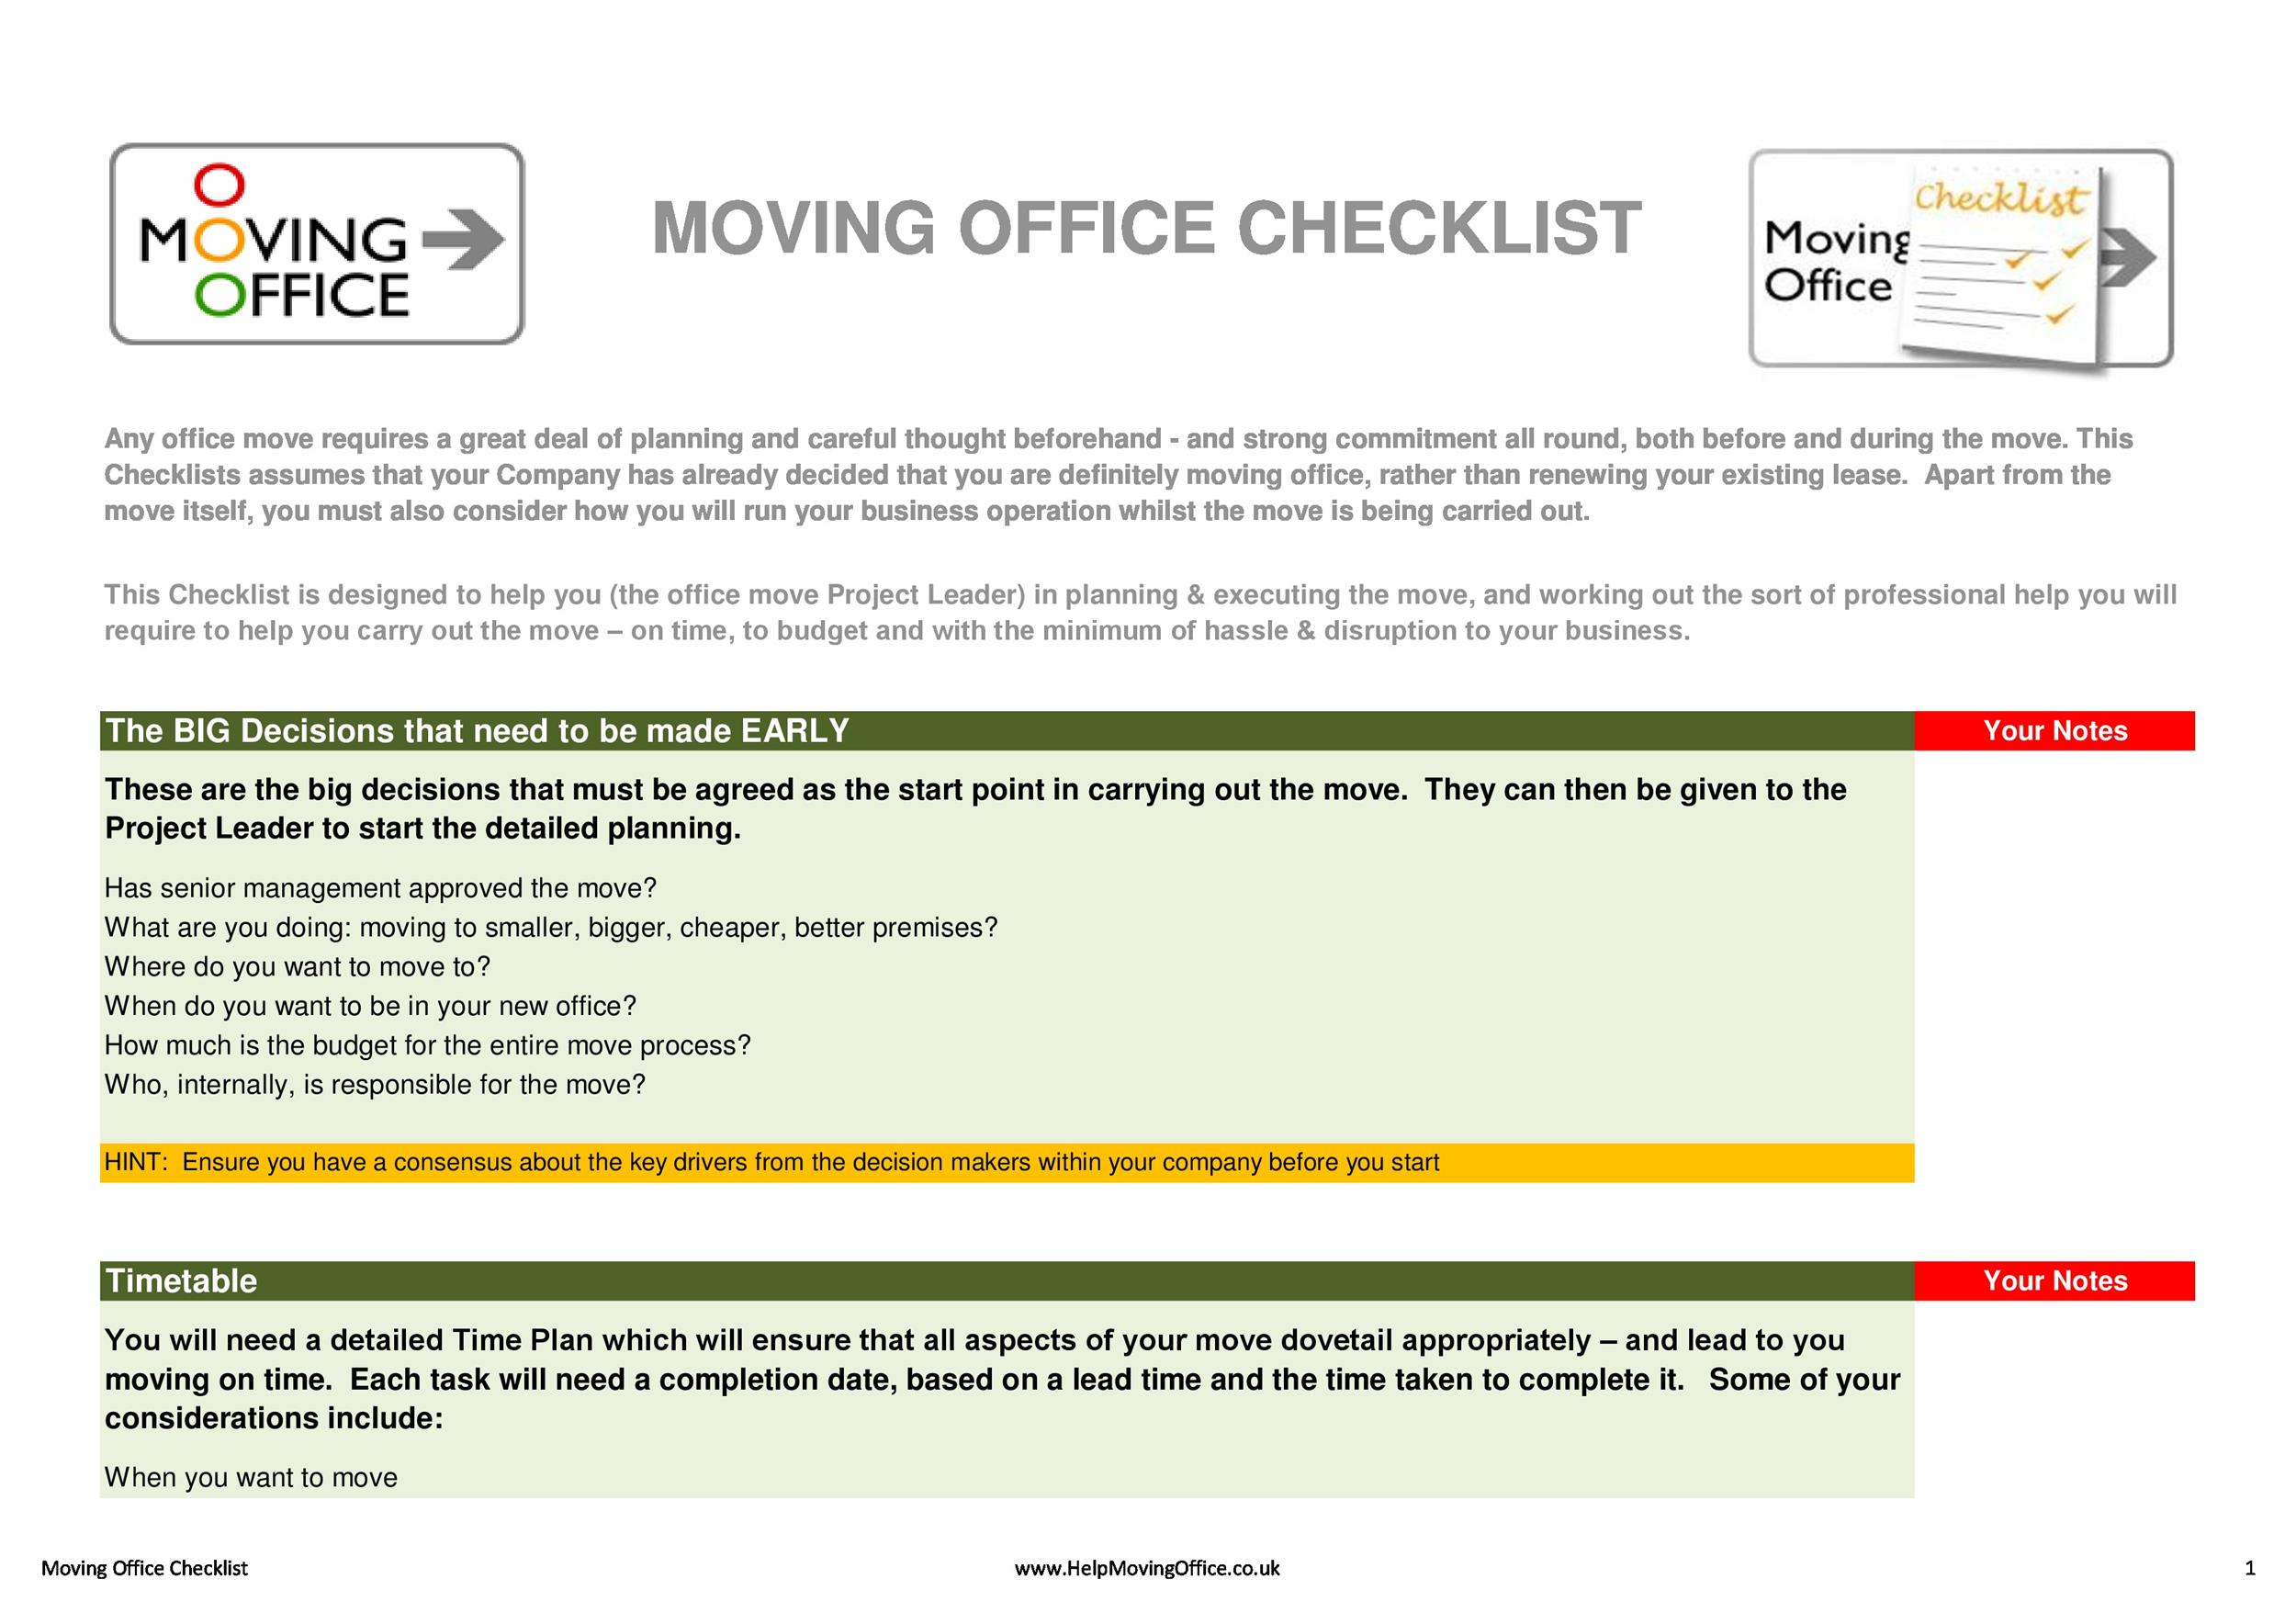 45 Great Moving Checklists Checklist for Moving In / Out ᐅ